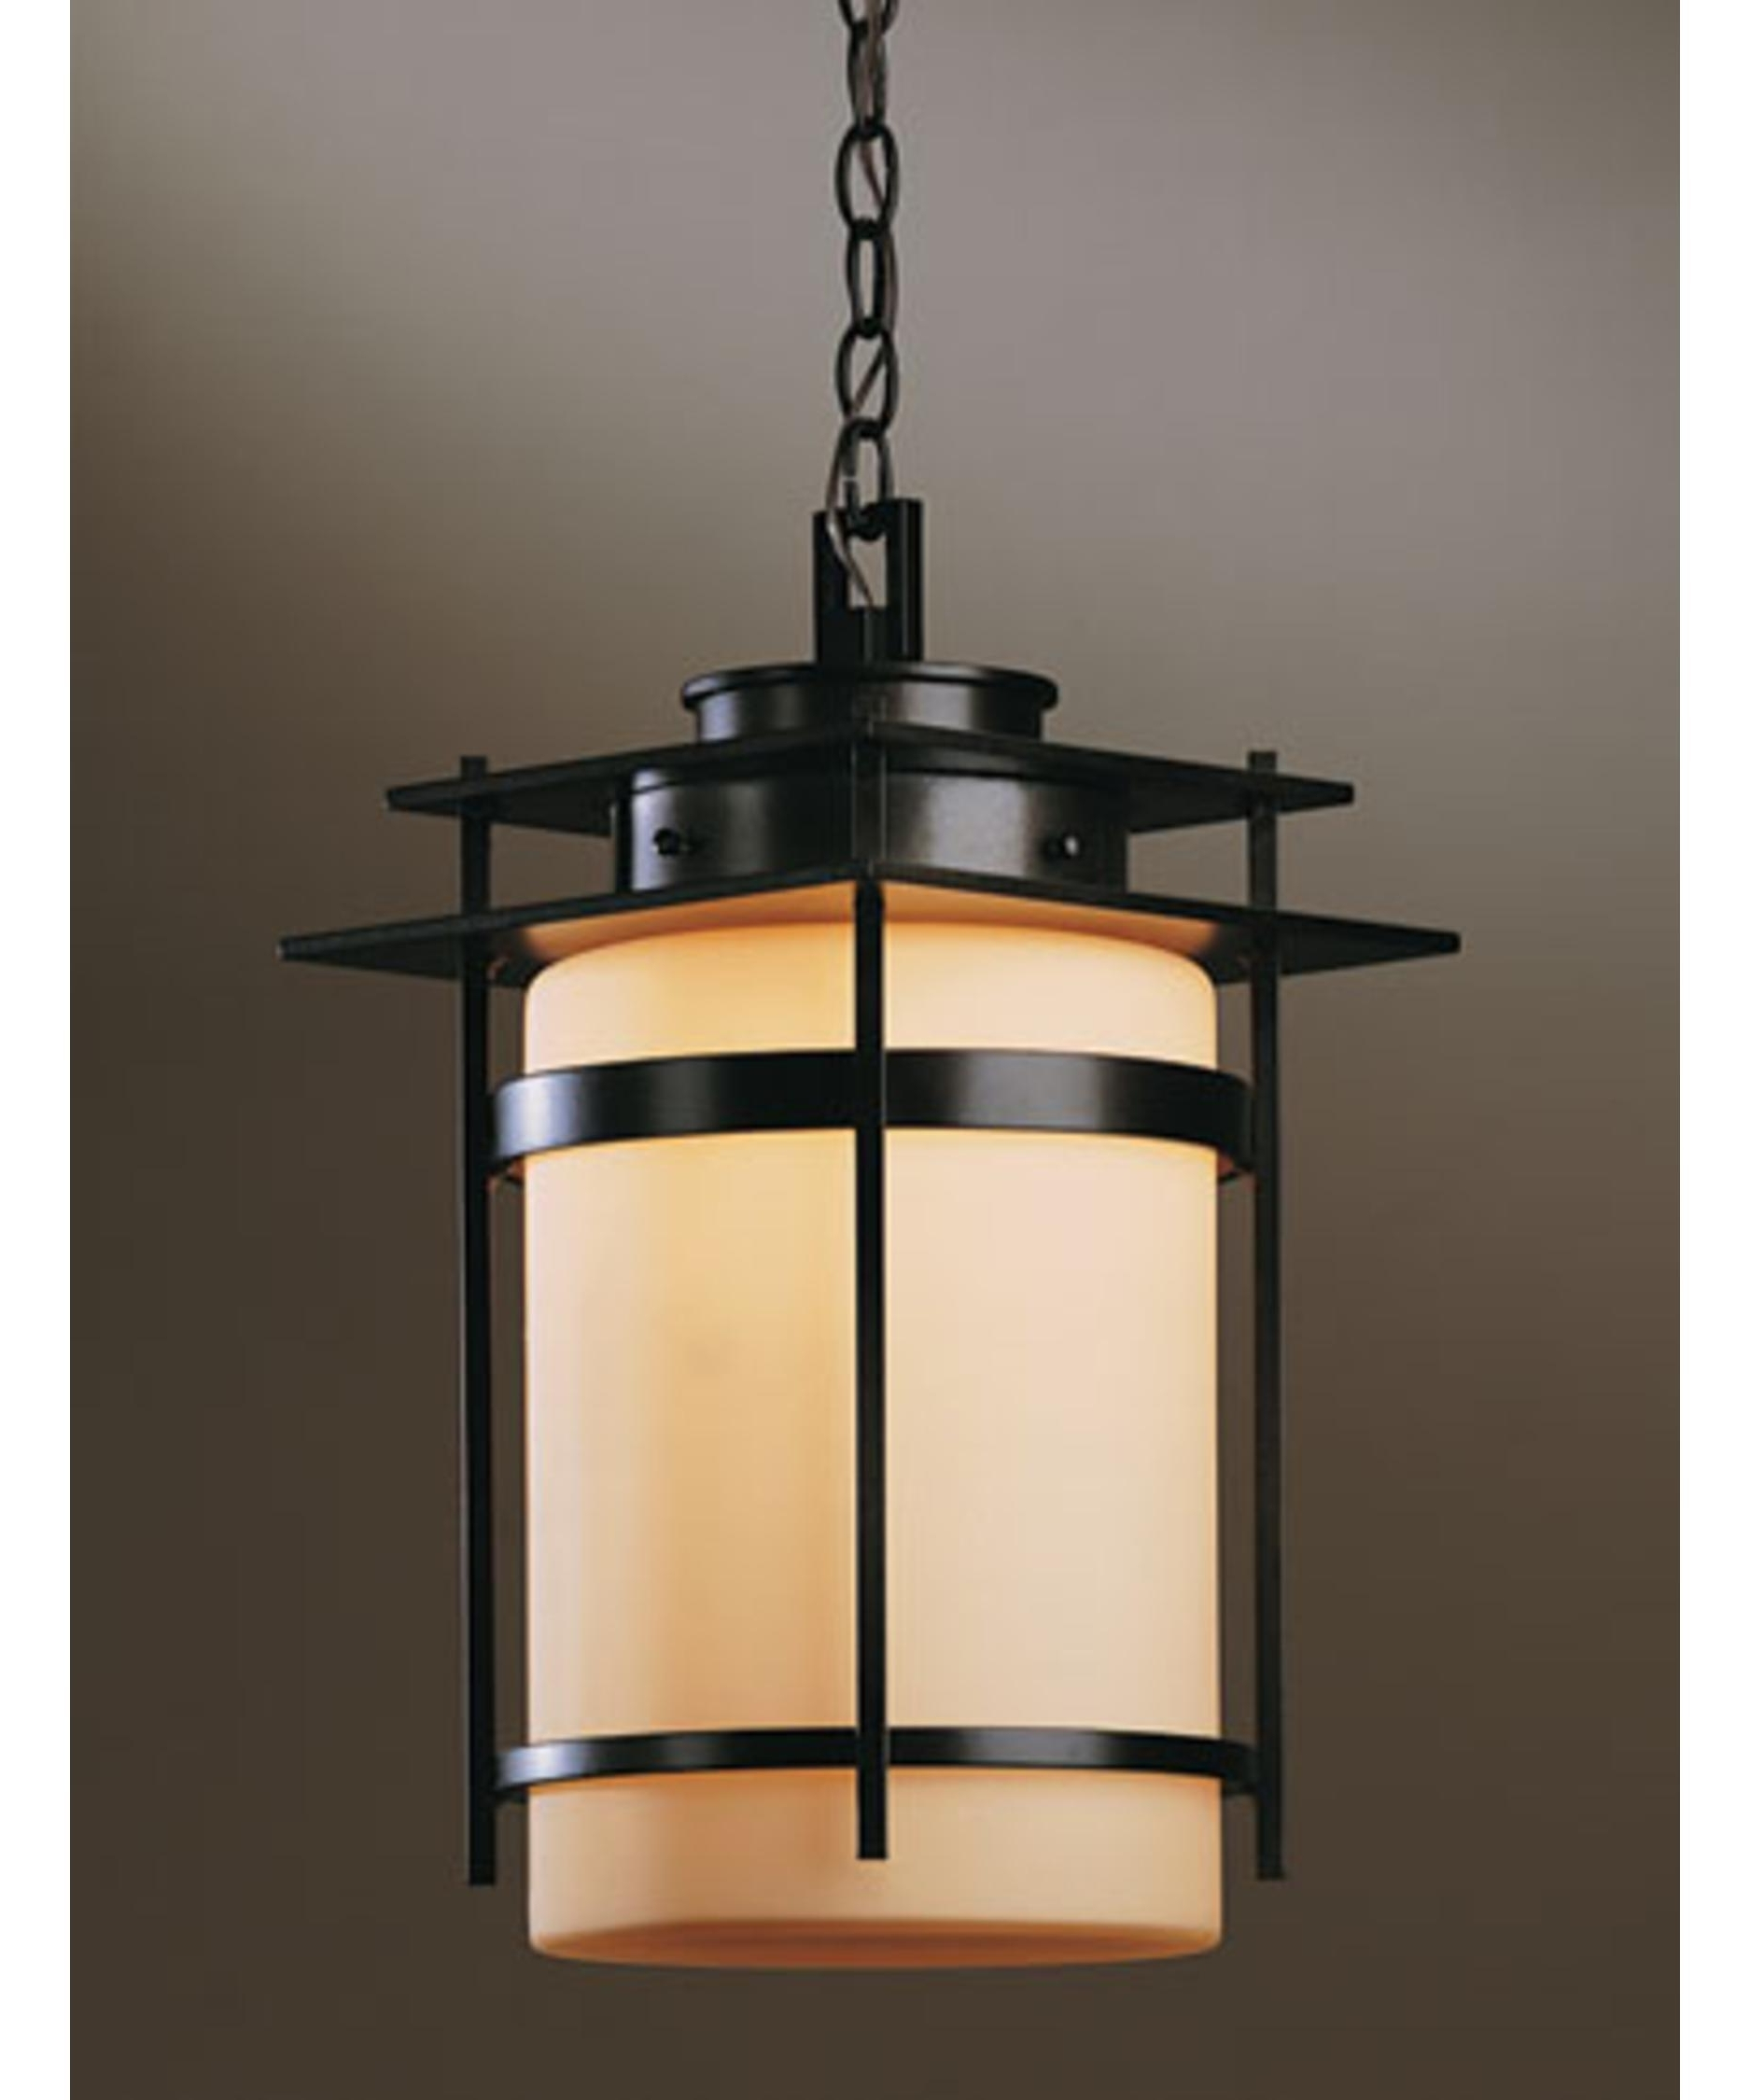 Famous Hanging Porch Light Oil Rubbed Bronze Outdoor Lights Houzz 12 Intended For Houzz Outdoor Hanging Lights (View 5 of 20)